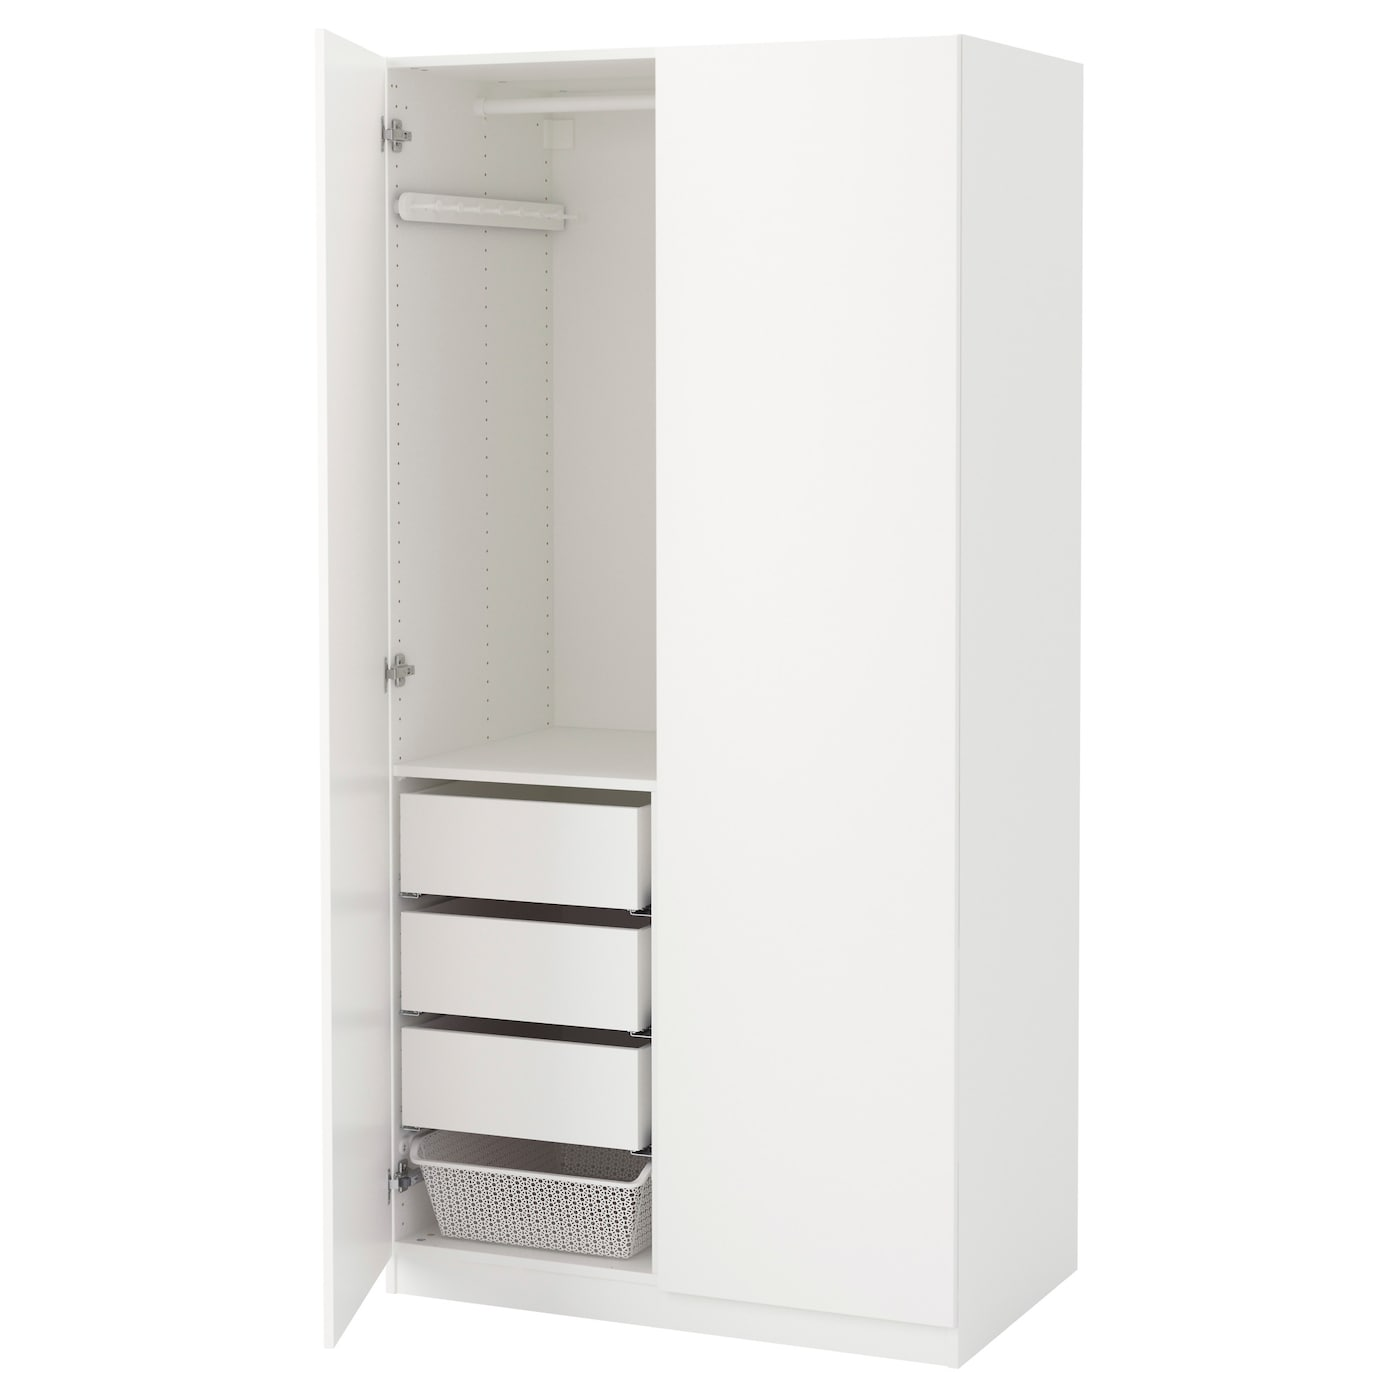 pax wardrobe white tanem white 100x60x201 cm ikea. Black Bedroom Furniture Sets. Home Design Ideas